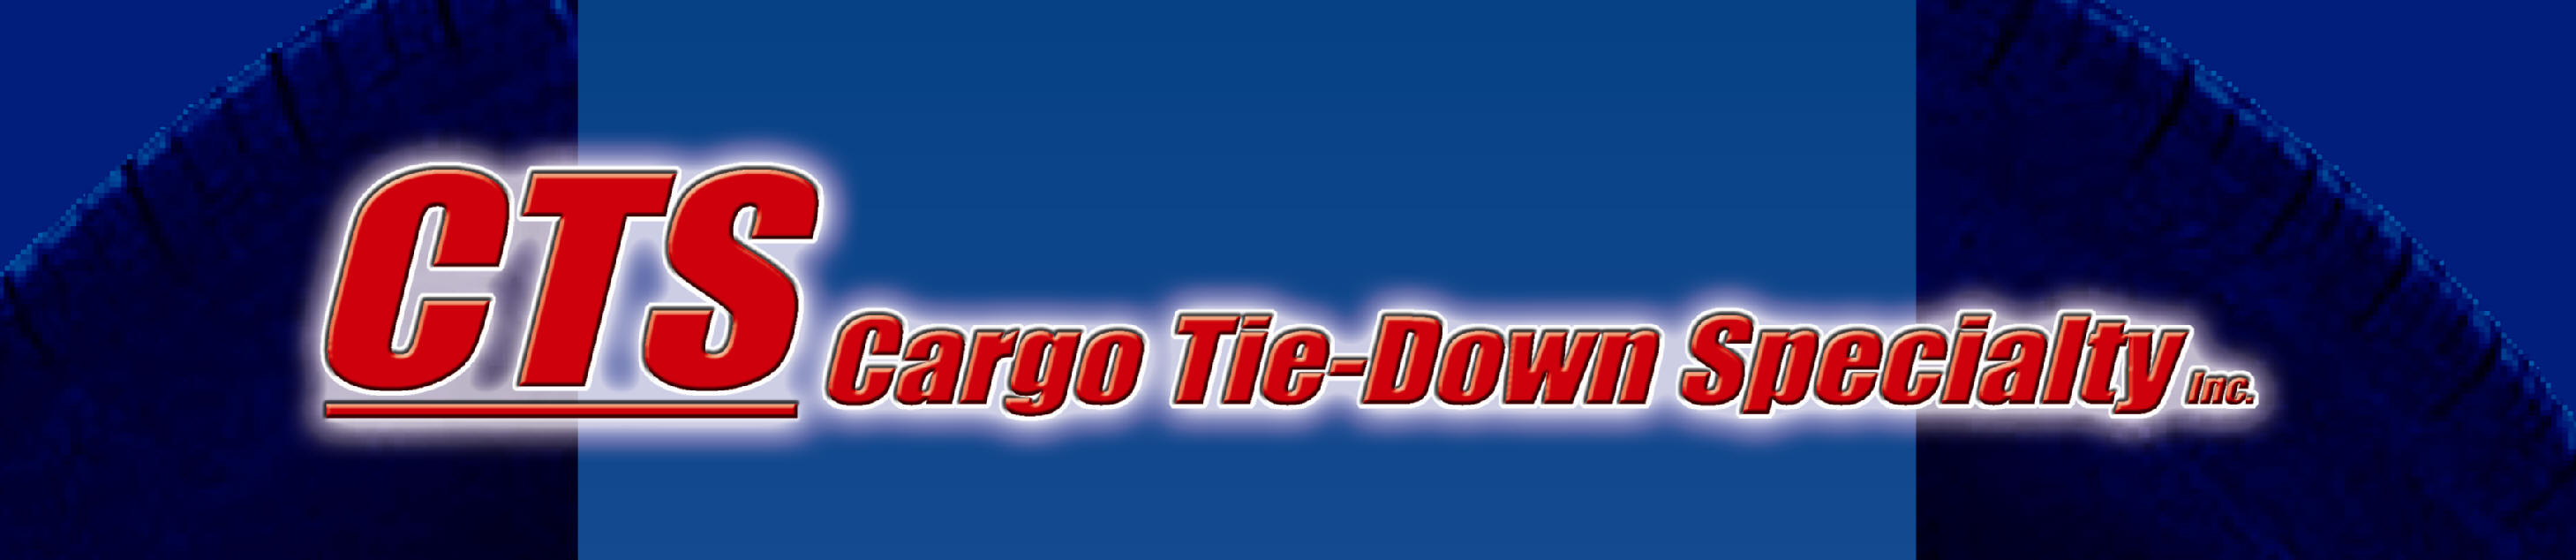 CTS Cargo Tie-Down Specialty , Inc. company